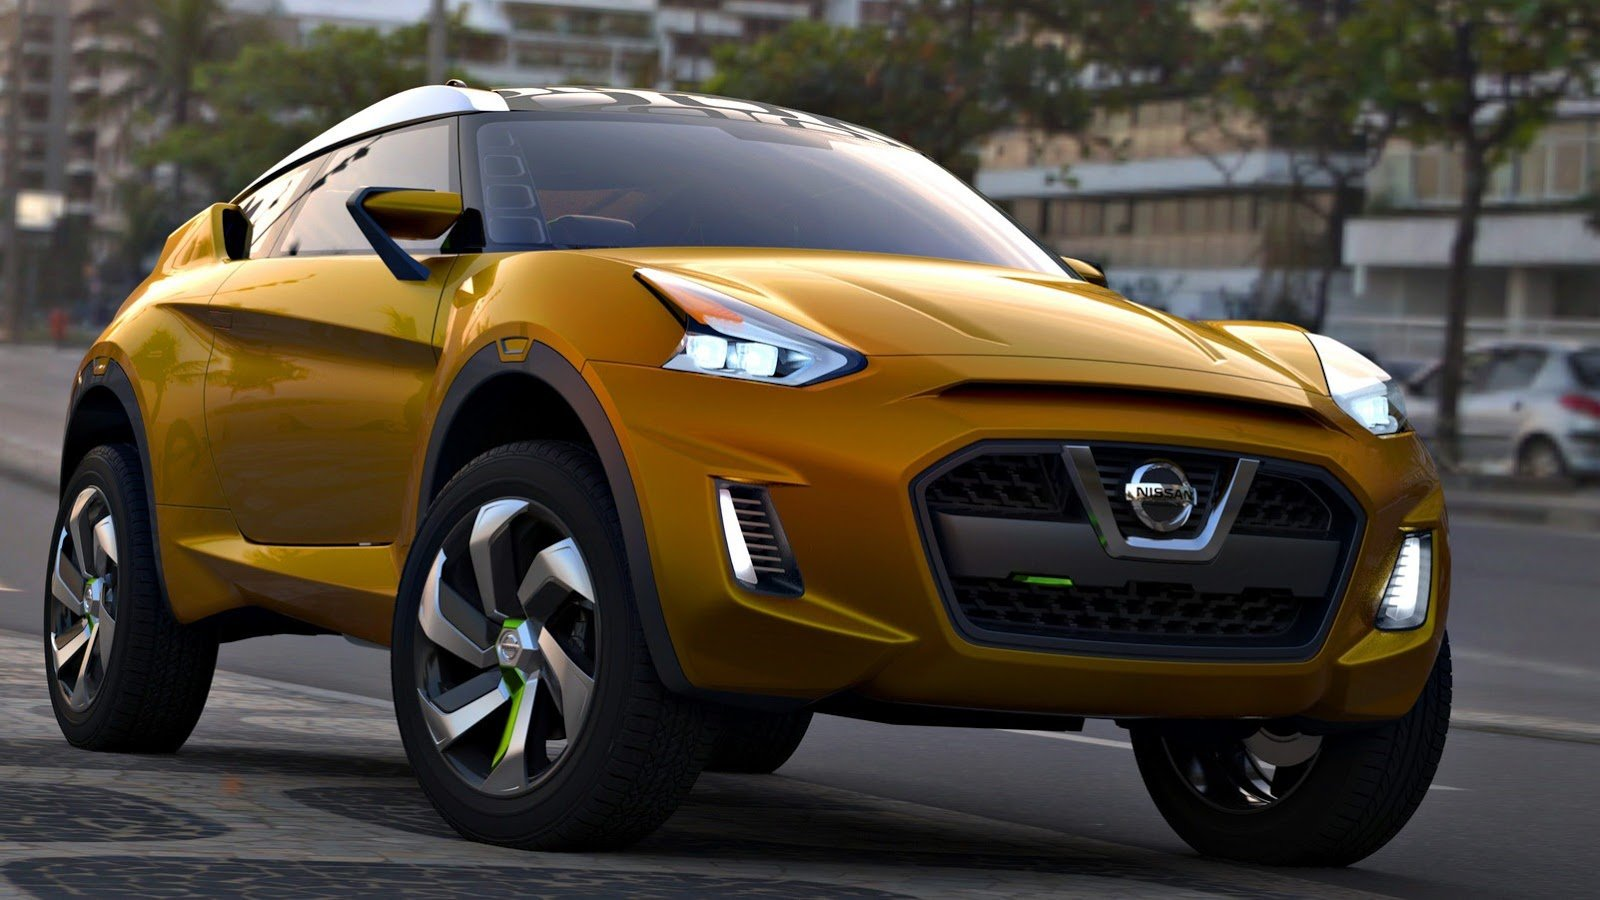 Nissan Extrem concept previews dramatic compact crossover ...